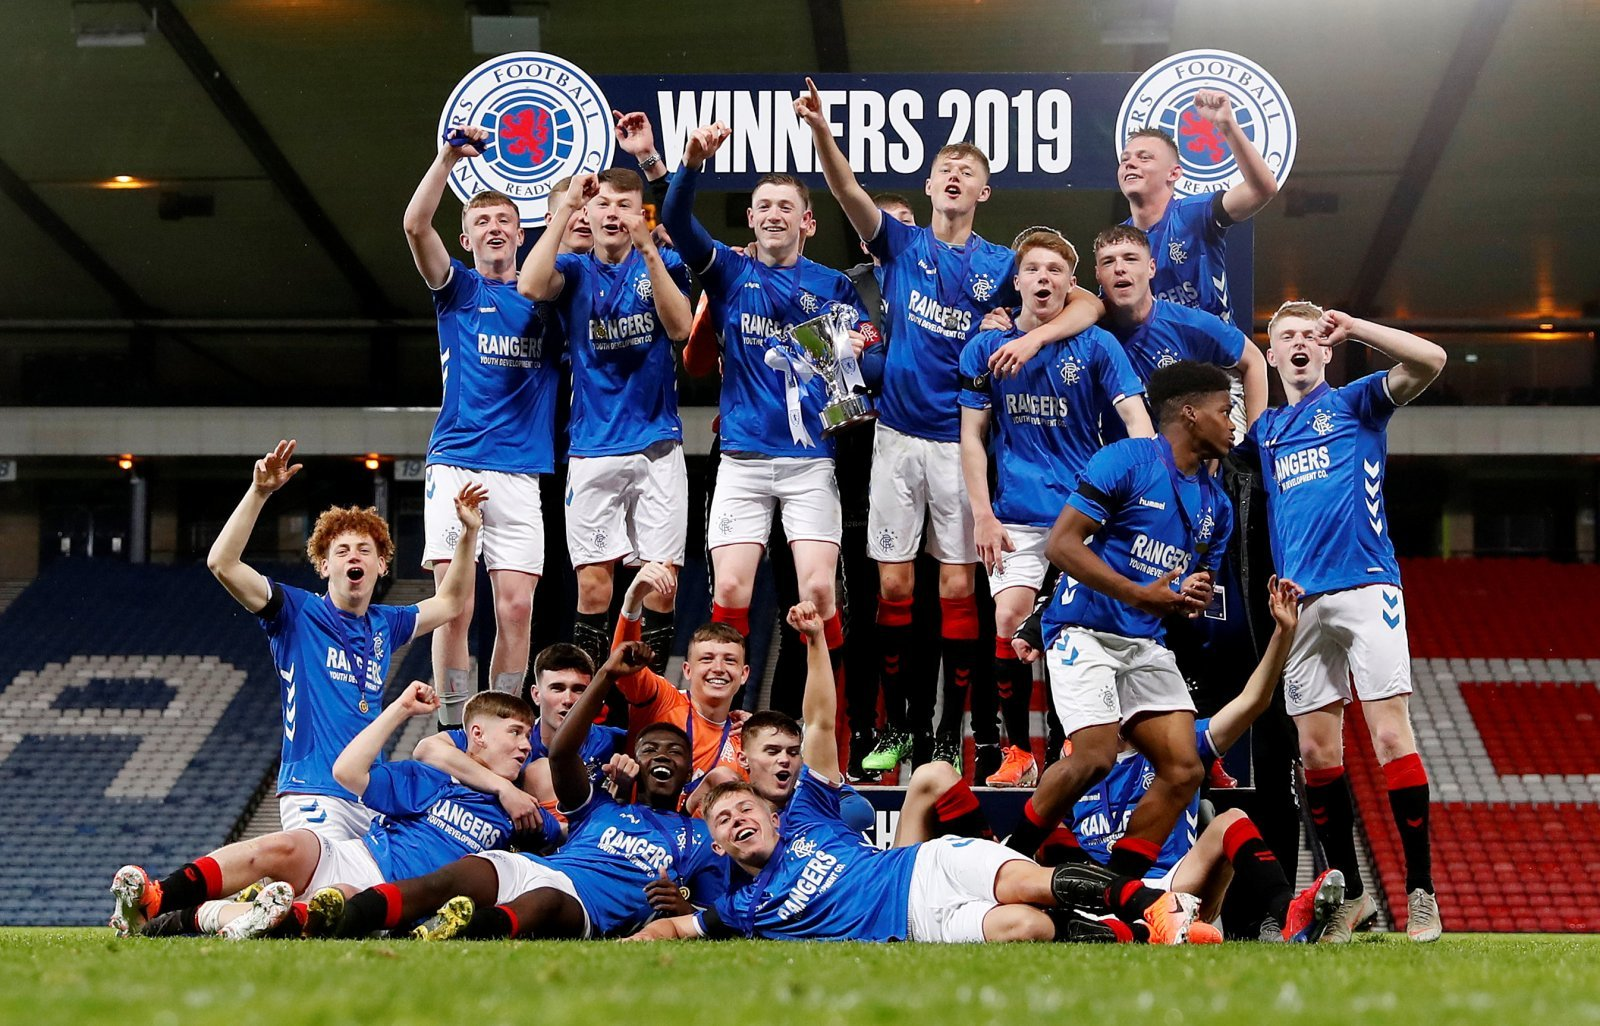 Gers Colts team plan given backing to join league